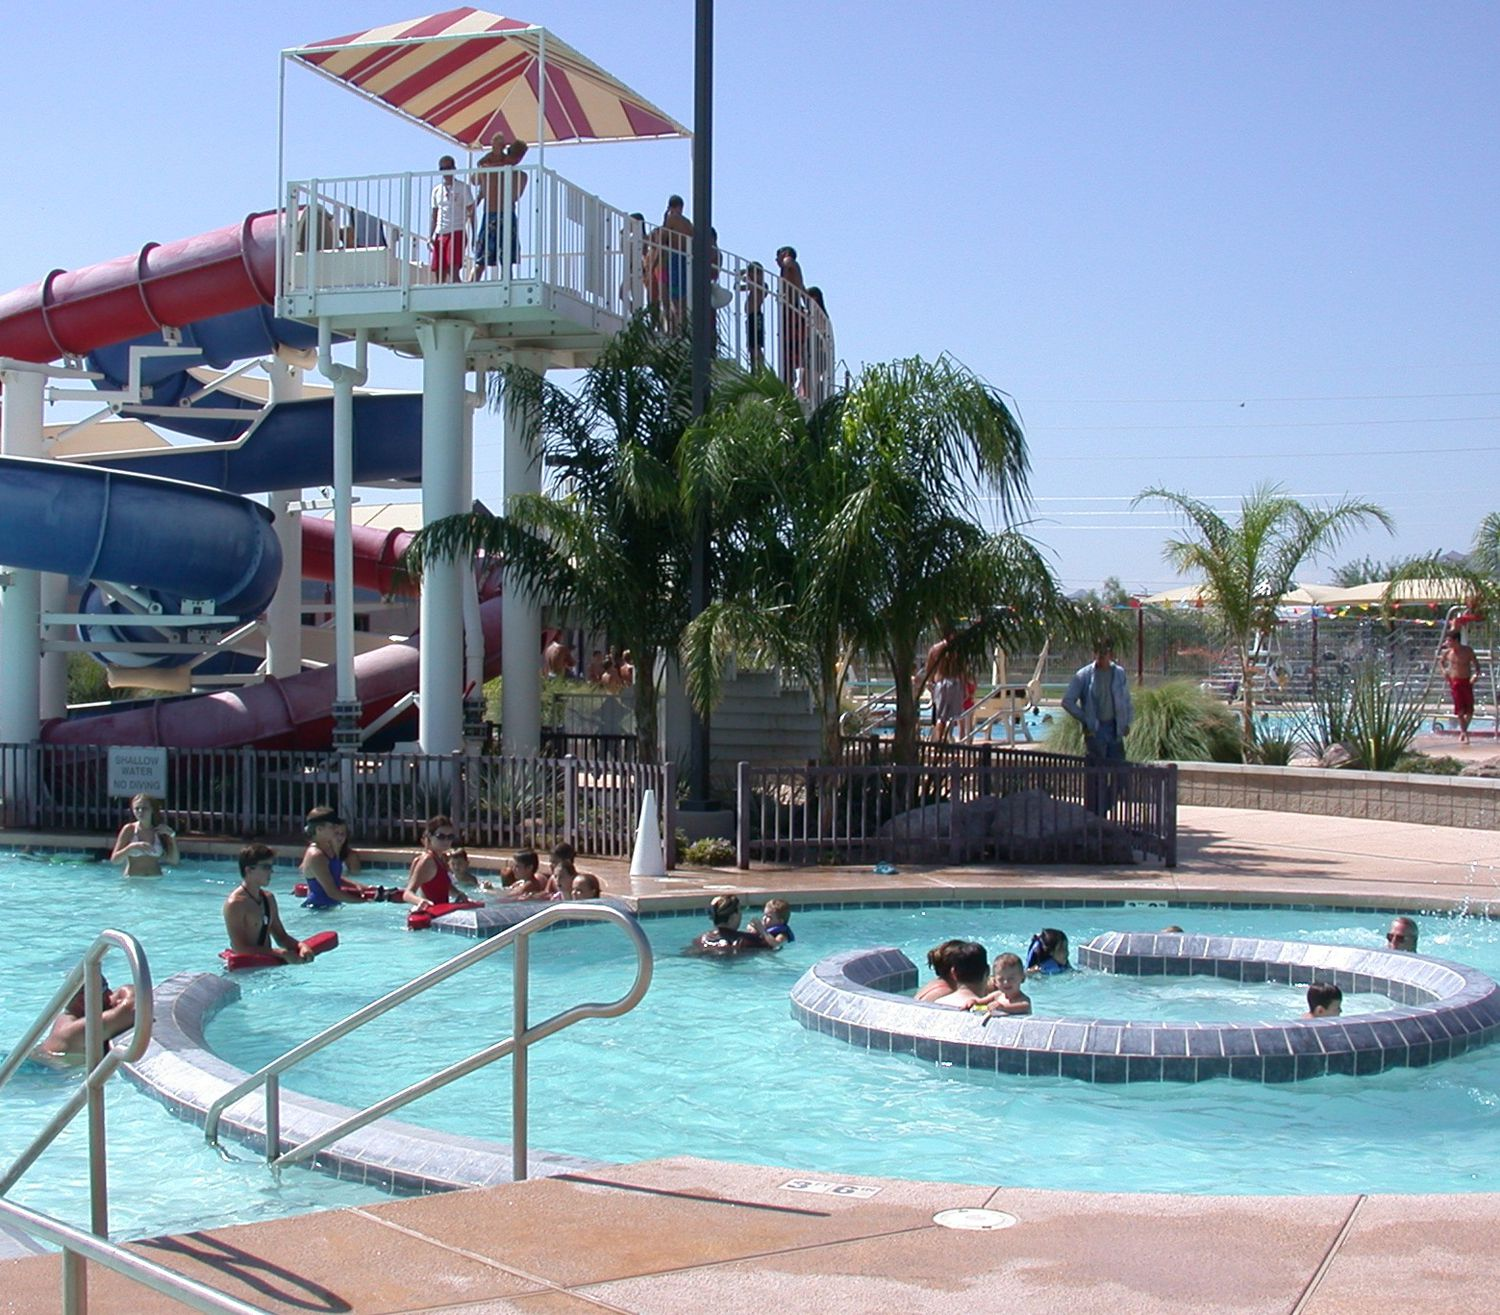 Arizona Swimming Pool: Public Swimming Pools In Greater Phoenix Cities